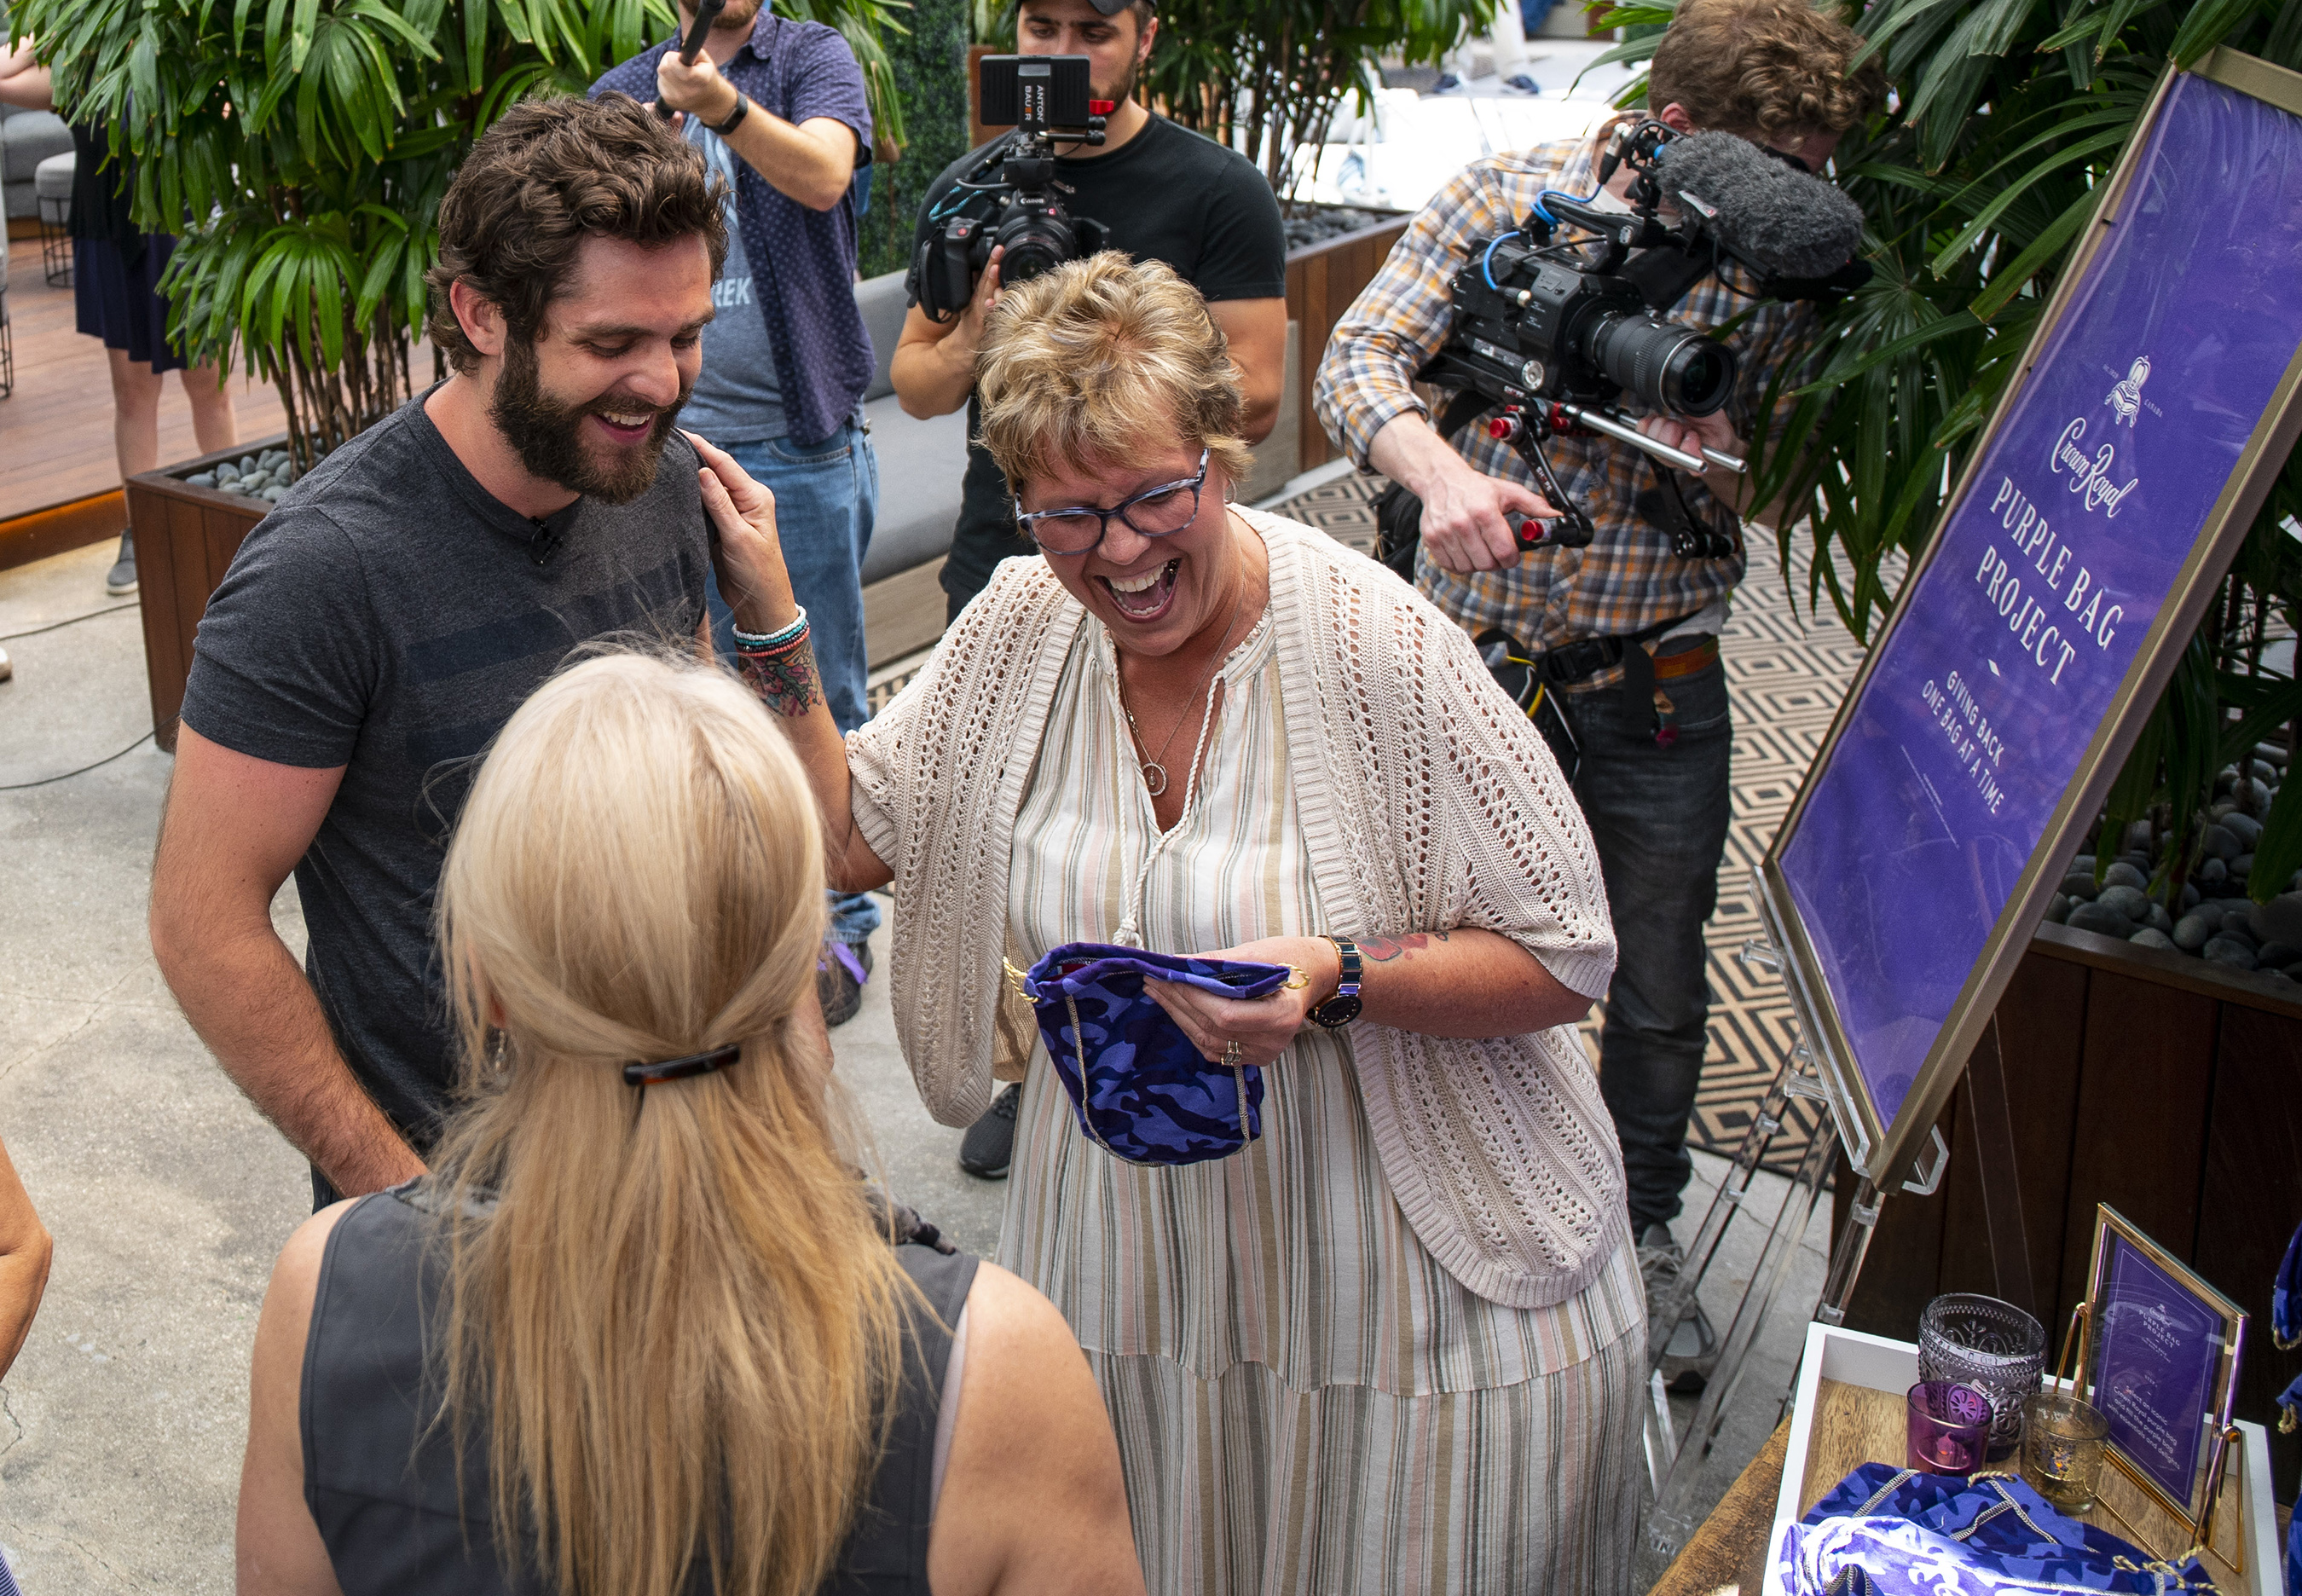 Ahead of the surprise reunion, the Mothers of Military joined Crown Royal Purple Bag Project partner Thomas Rhett and Packages From Home, a 501(c)(3), to assemble care packages for the brave men and women currently serving overseas.